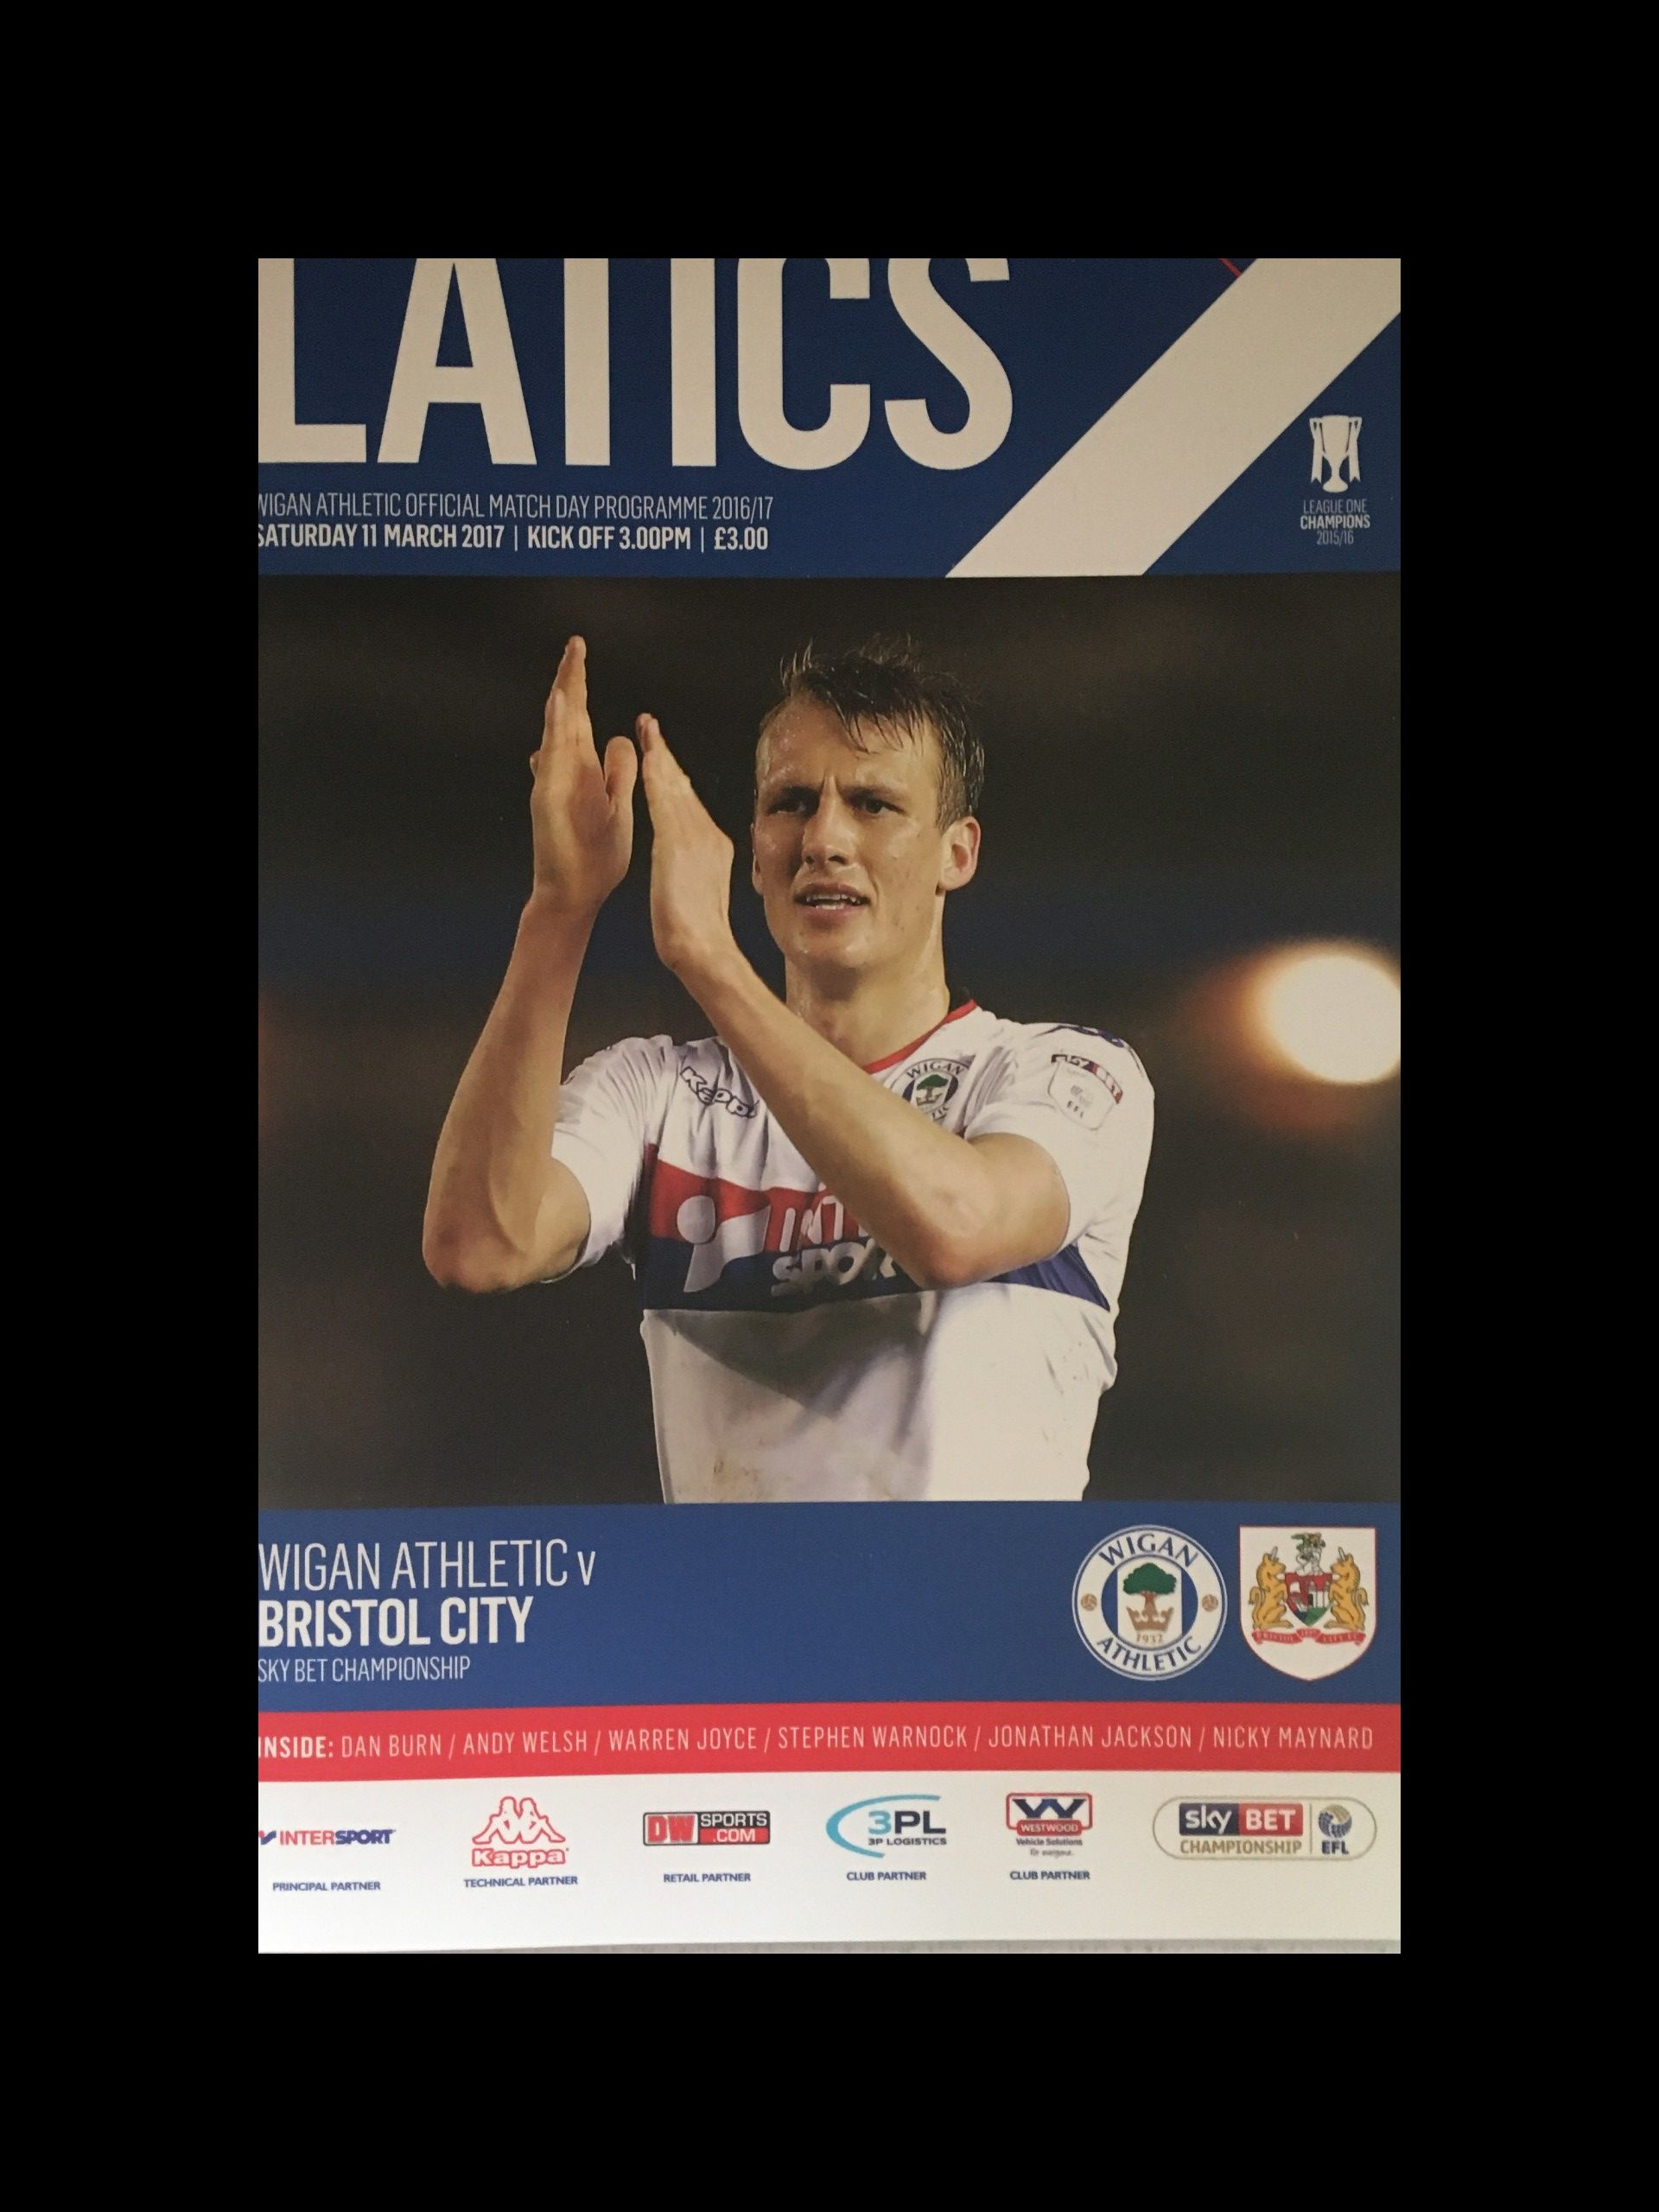 Wigan Athletic v Bristol City 11-03-17 Programme